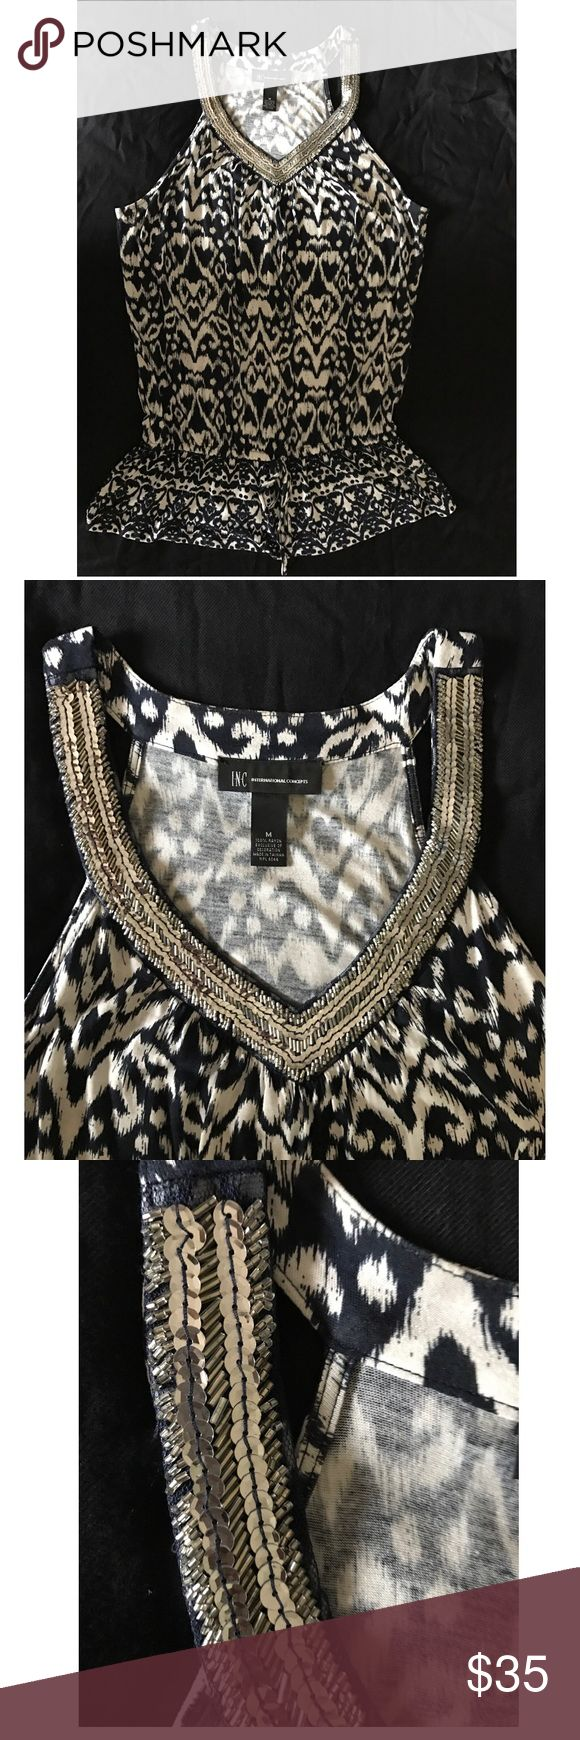 Inc blue and white short sleeve blouse Beautiful blue and white short sleeve top with silver sequins V Neck . Size M , 100% Rayon. Gathers at hips with tie, sits low at hips. INC International Concepts Tops Blouses